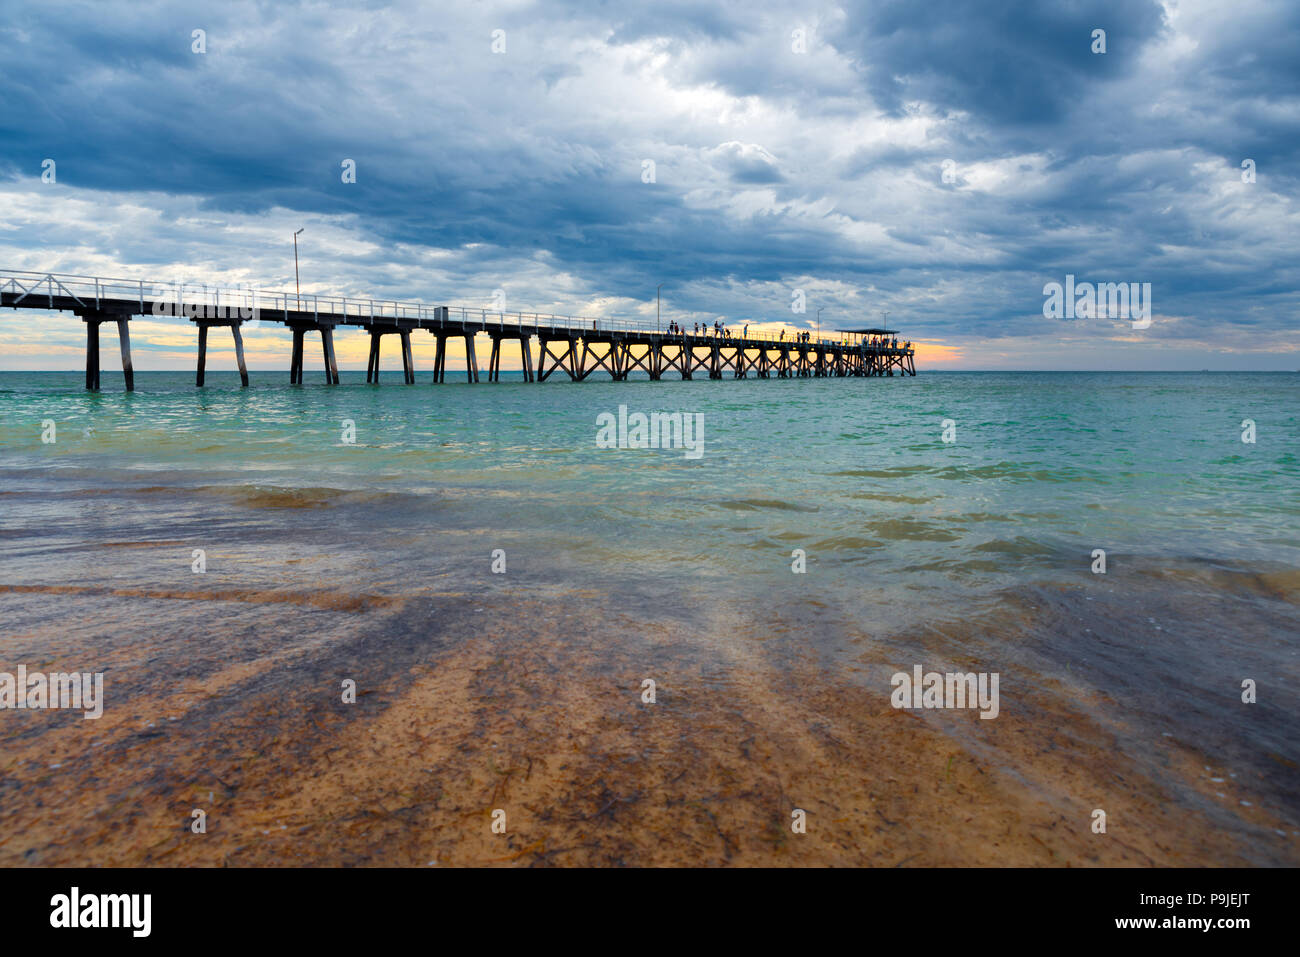 The Largs Bay jetty near Adelaide, South Australia. - Stock Image